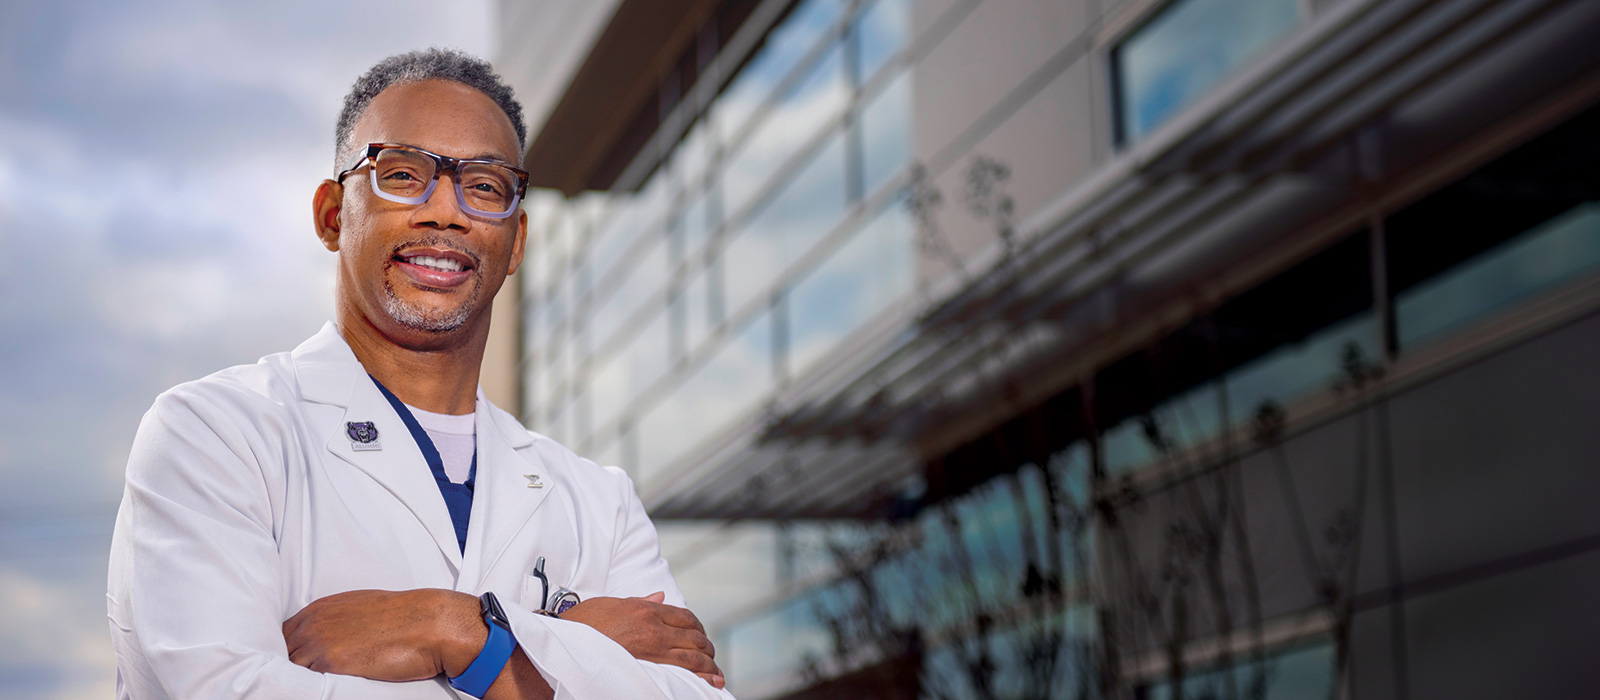 UCA alumnus encourages the African American community to receive the COVID-19 vaccine